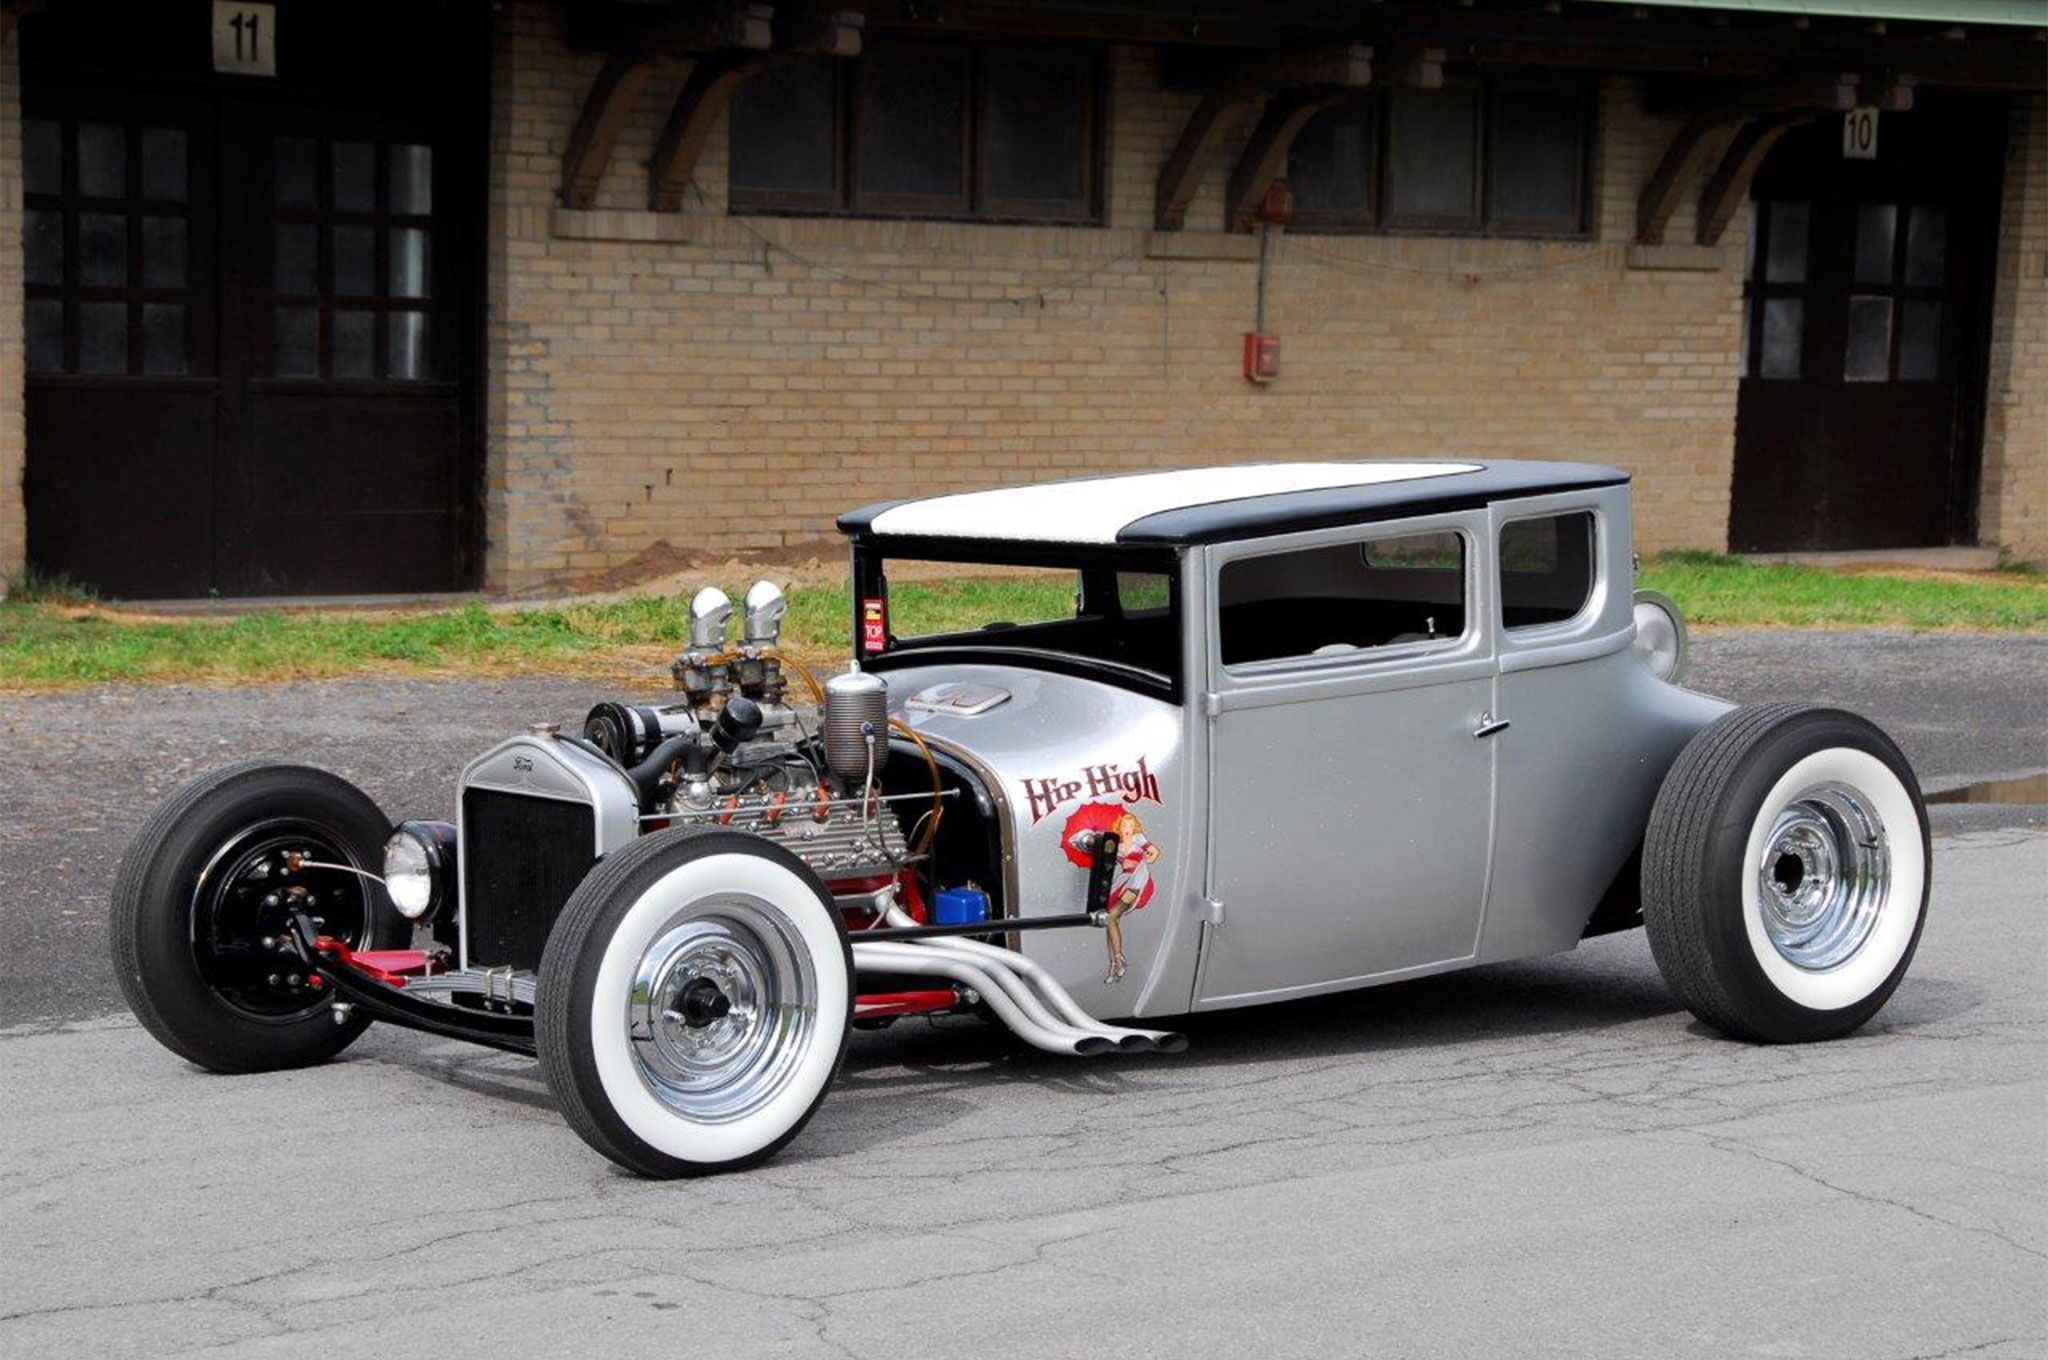 Looking like a Rattler ready to strike, Mike 's coupe gets its attitude from a healthy 9-inch chop and glitz from gallons of PPG silver metalflake. Cowl steering, a 4-inch Z and 14-inch rear kick add the final bit of voodoo to the cauldron.